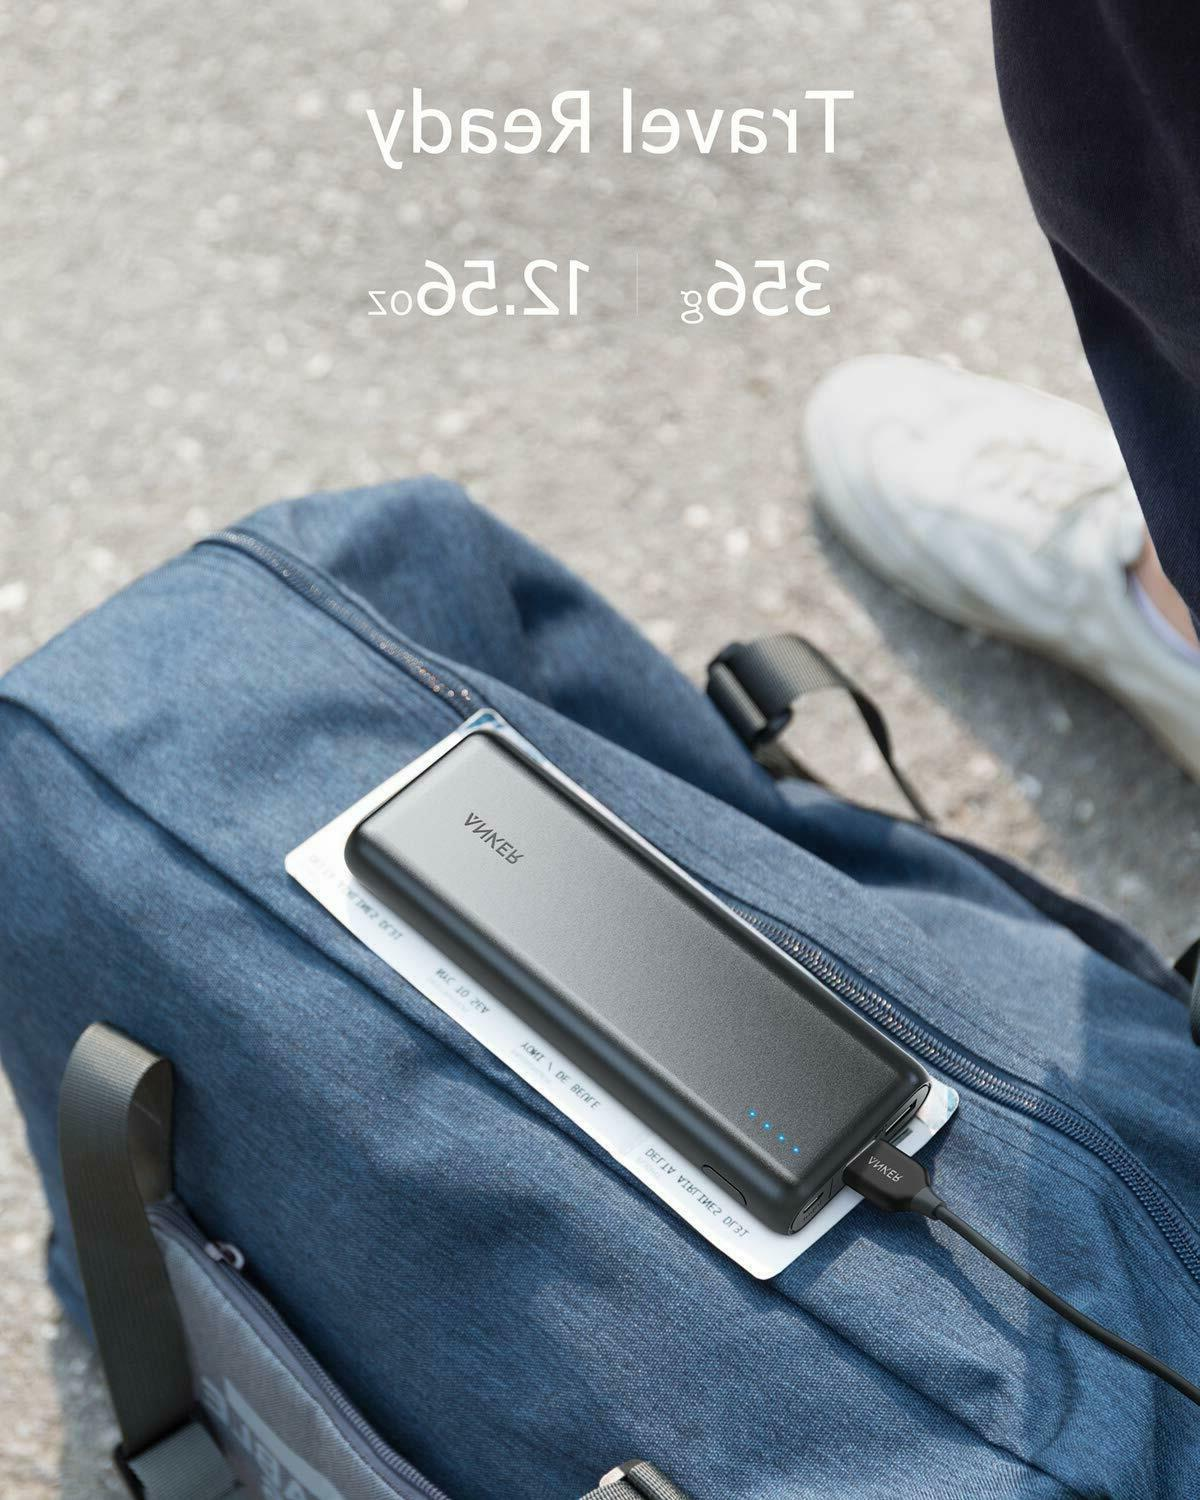 Anker Charger iphone